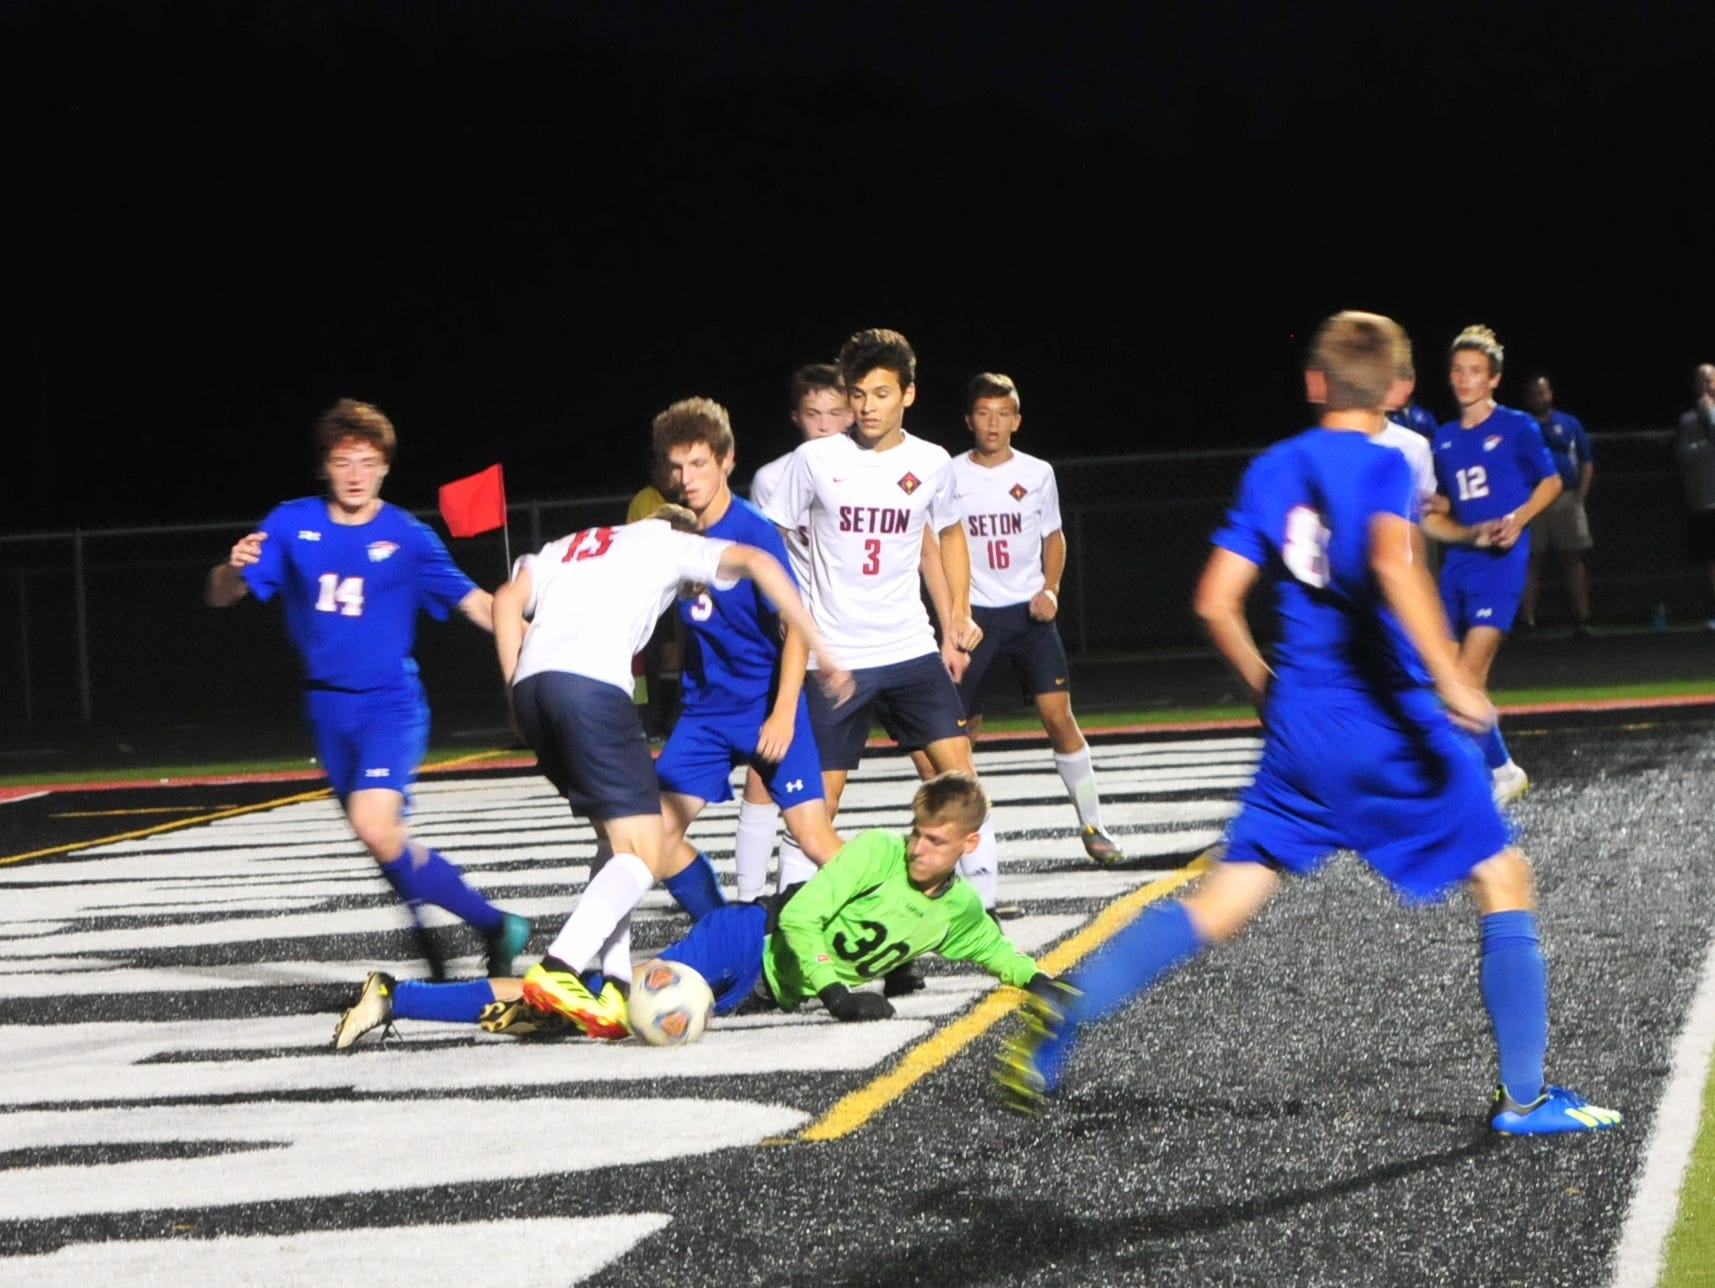 Union County's goalkeeper tries to save the ball during the IHSAA Class A Sectional 42 boys soccer semifinal at Knightstown Wednesday, Oct. 3, 2018.